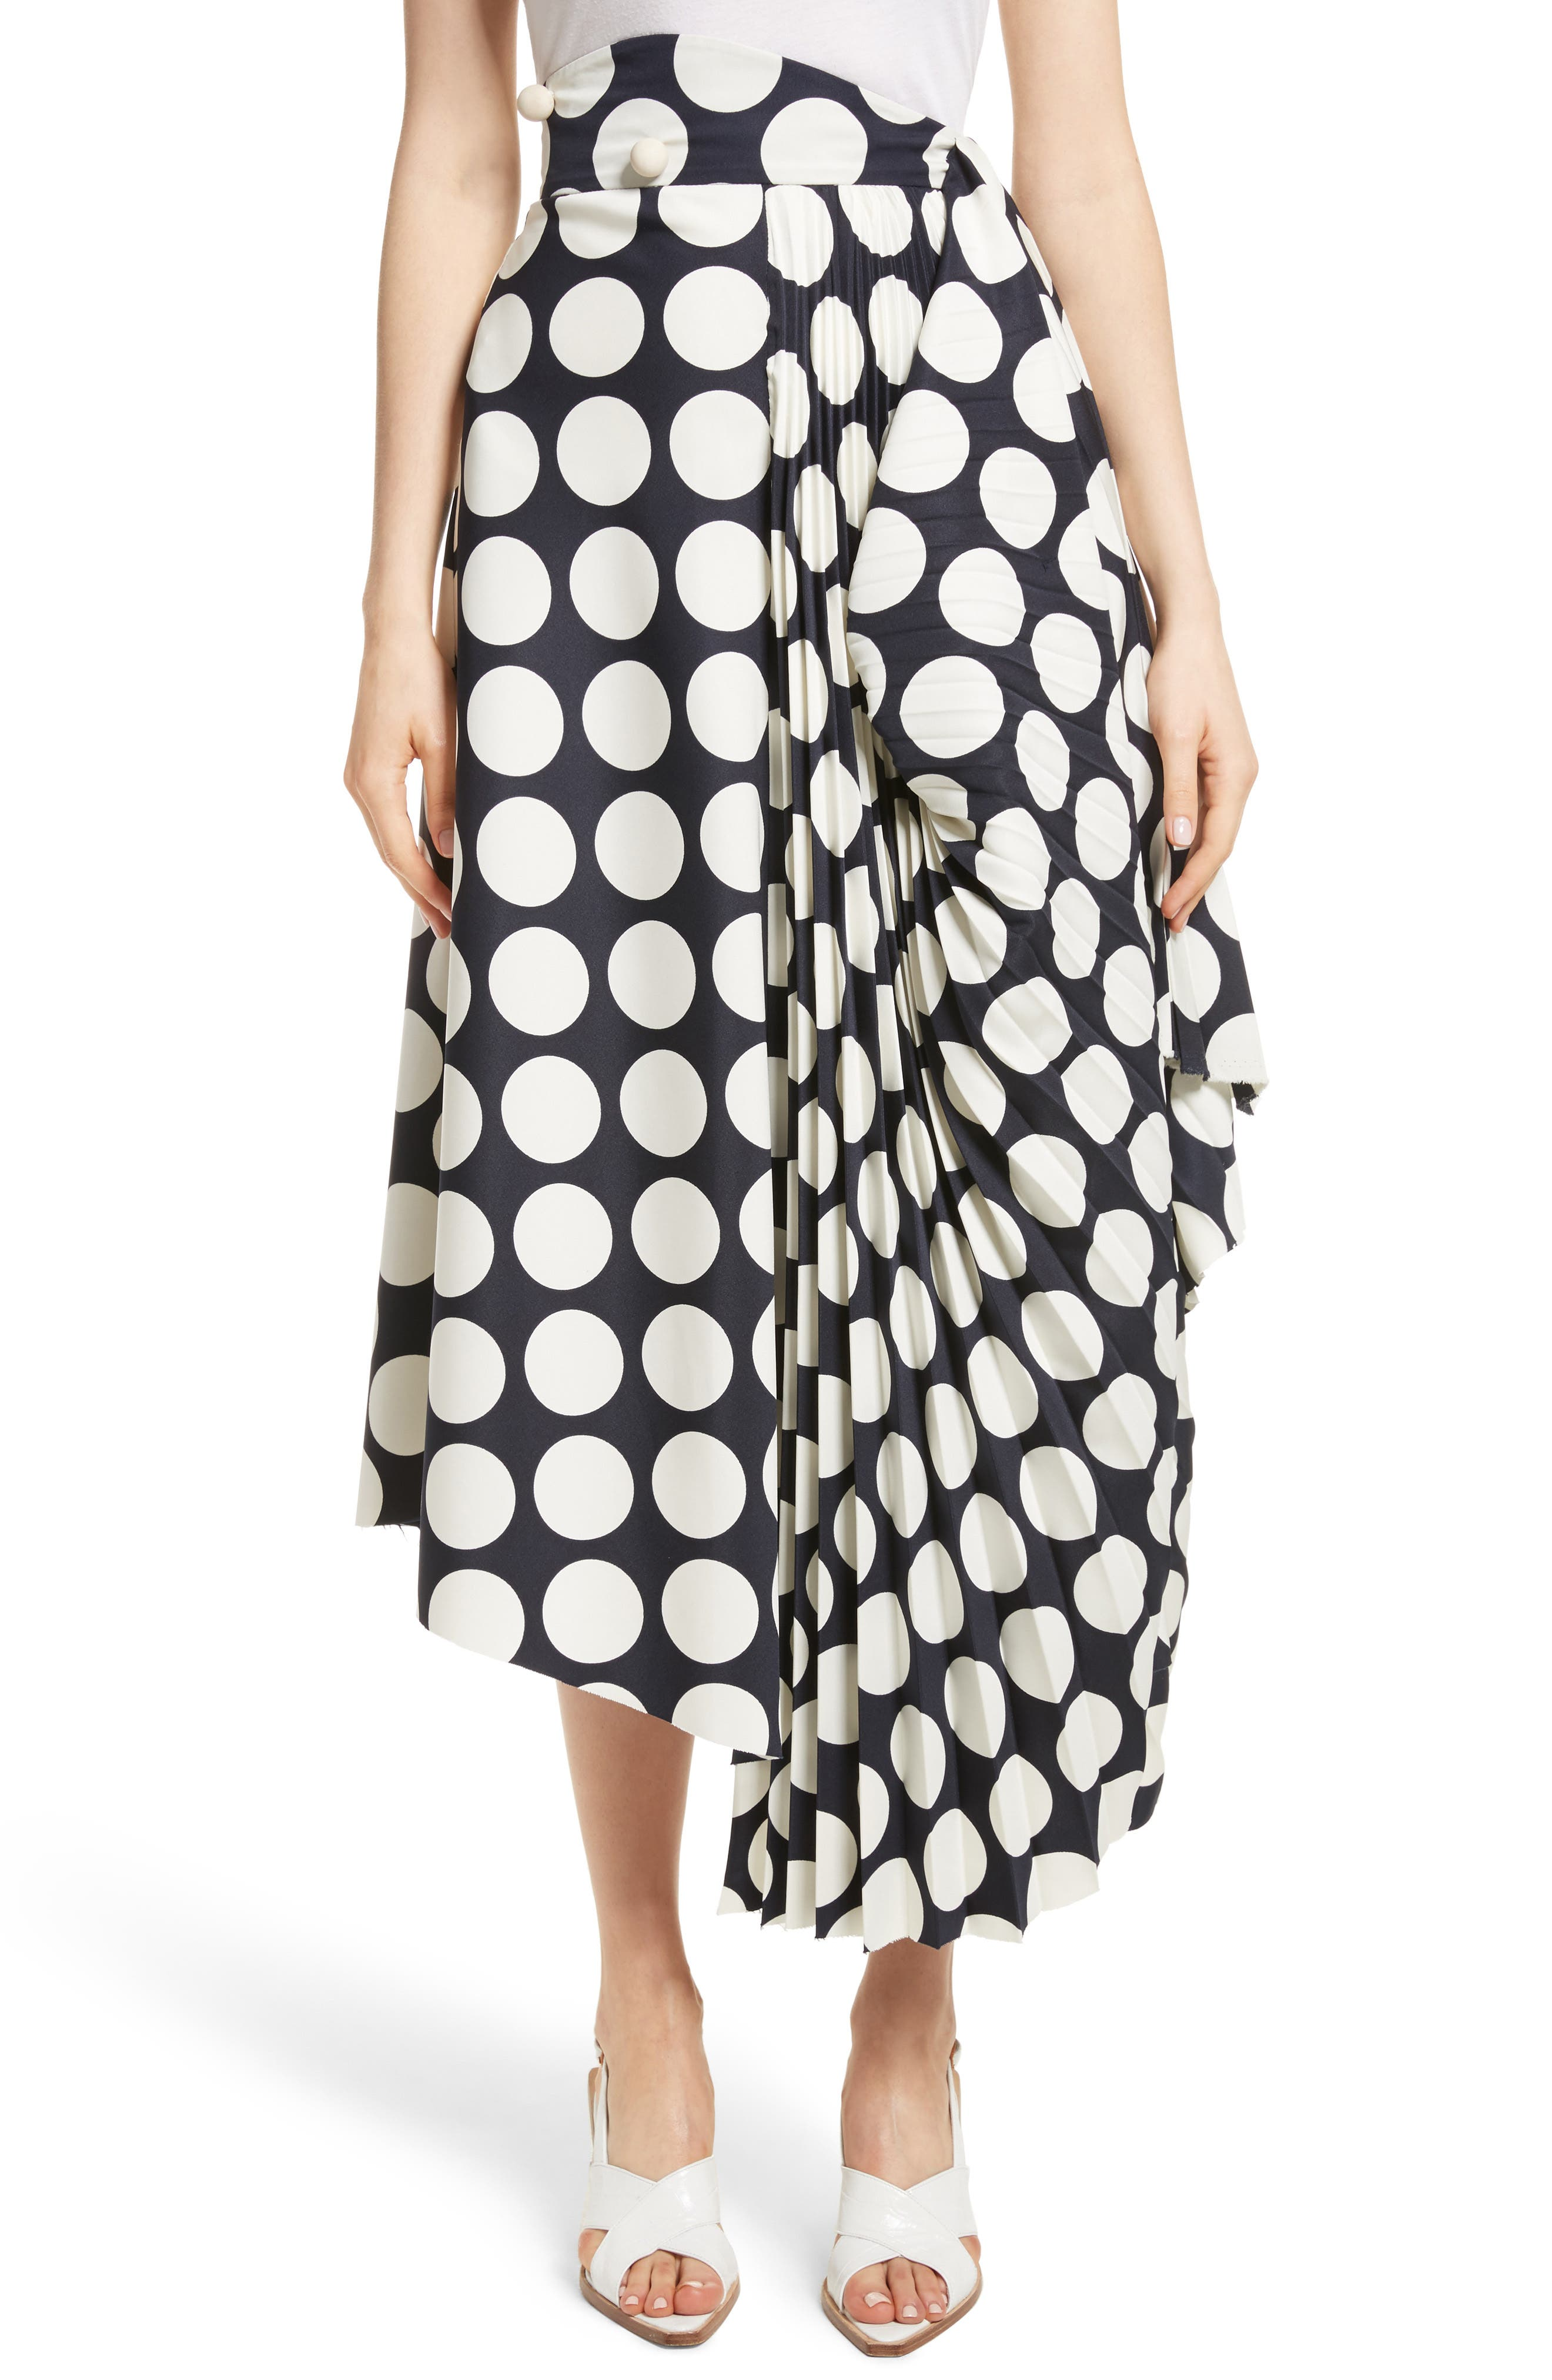 Alternate Image 1 Selected - A.W.A.K.E. Giant Polka Dot Pleated Skirt